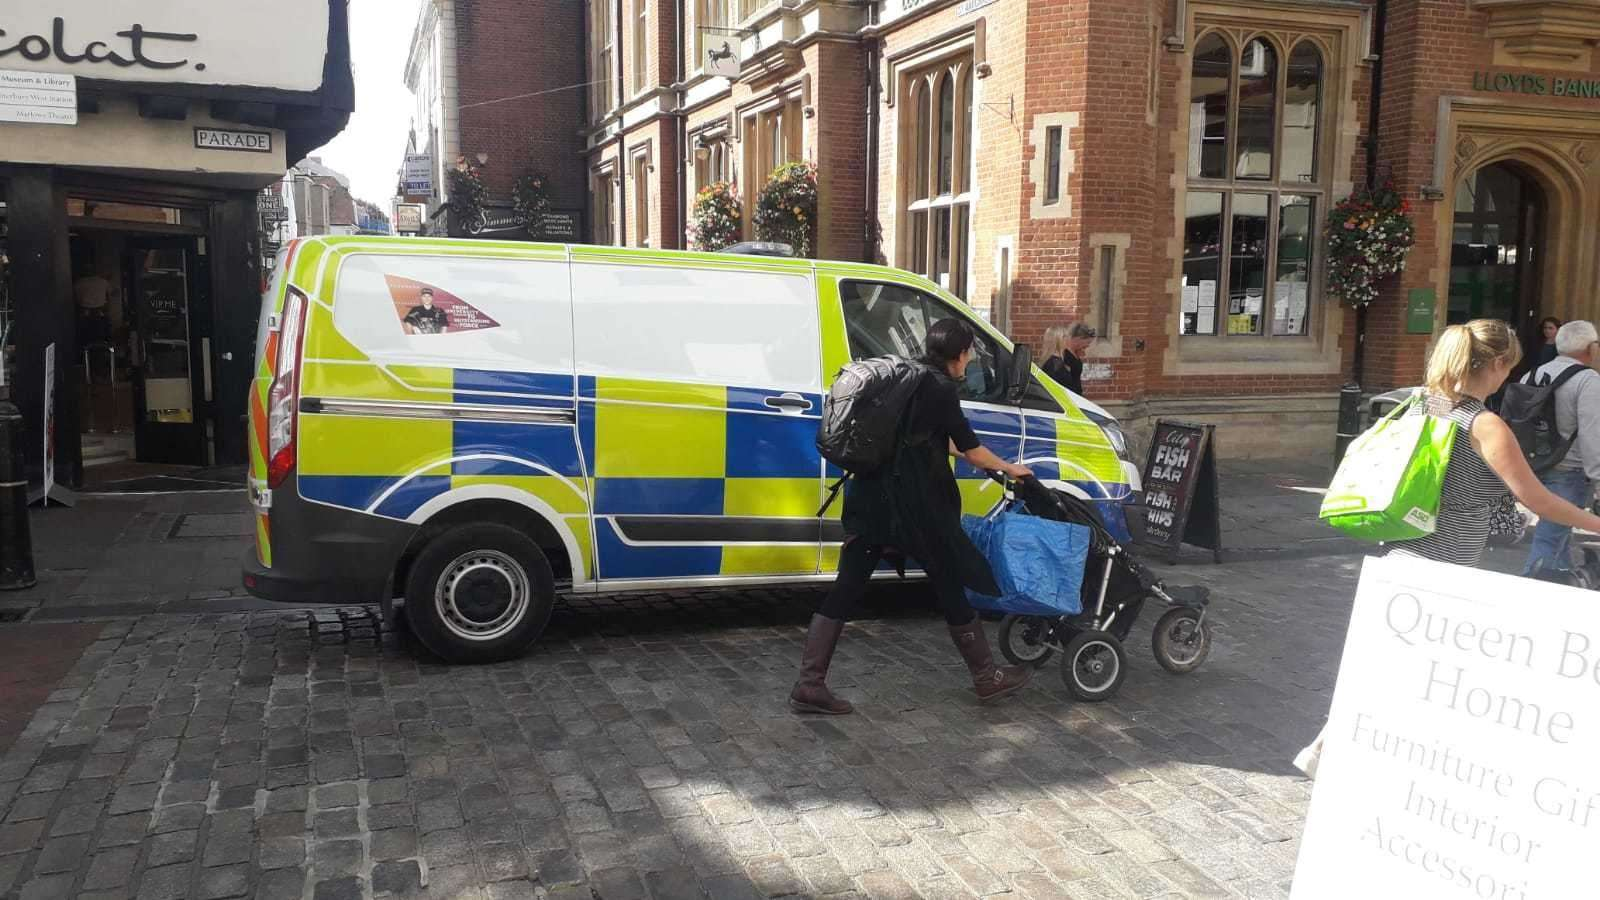 A police van could be seen parked at the junction between St Margaret's Street and High Street